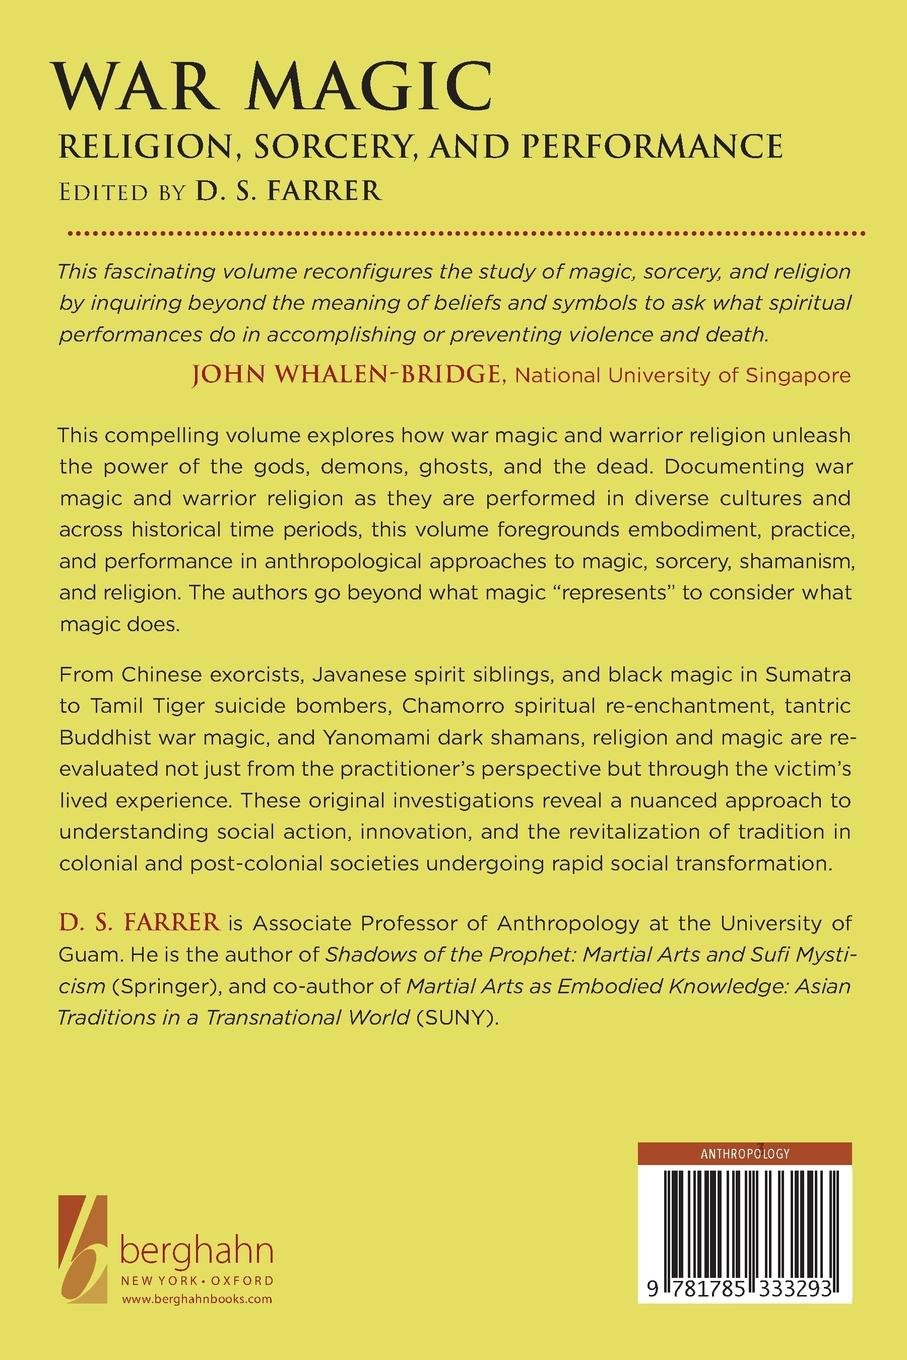 Buy War Magic: Religion, Sorcery, and Performance Book